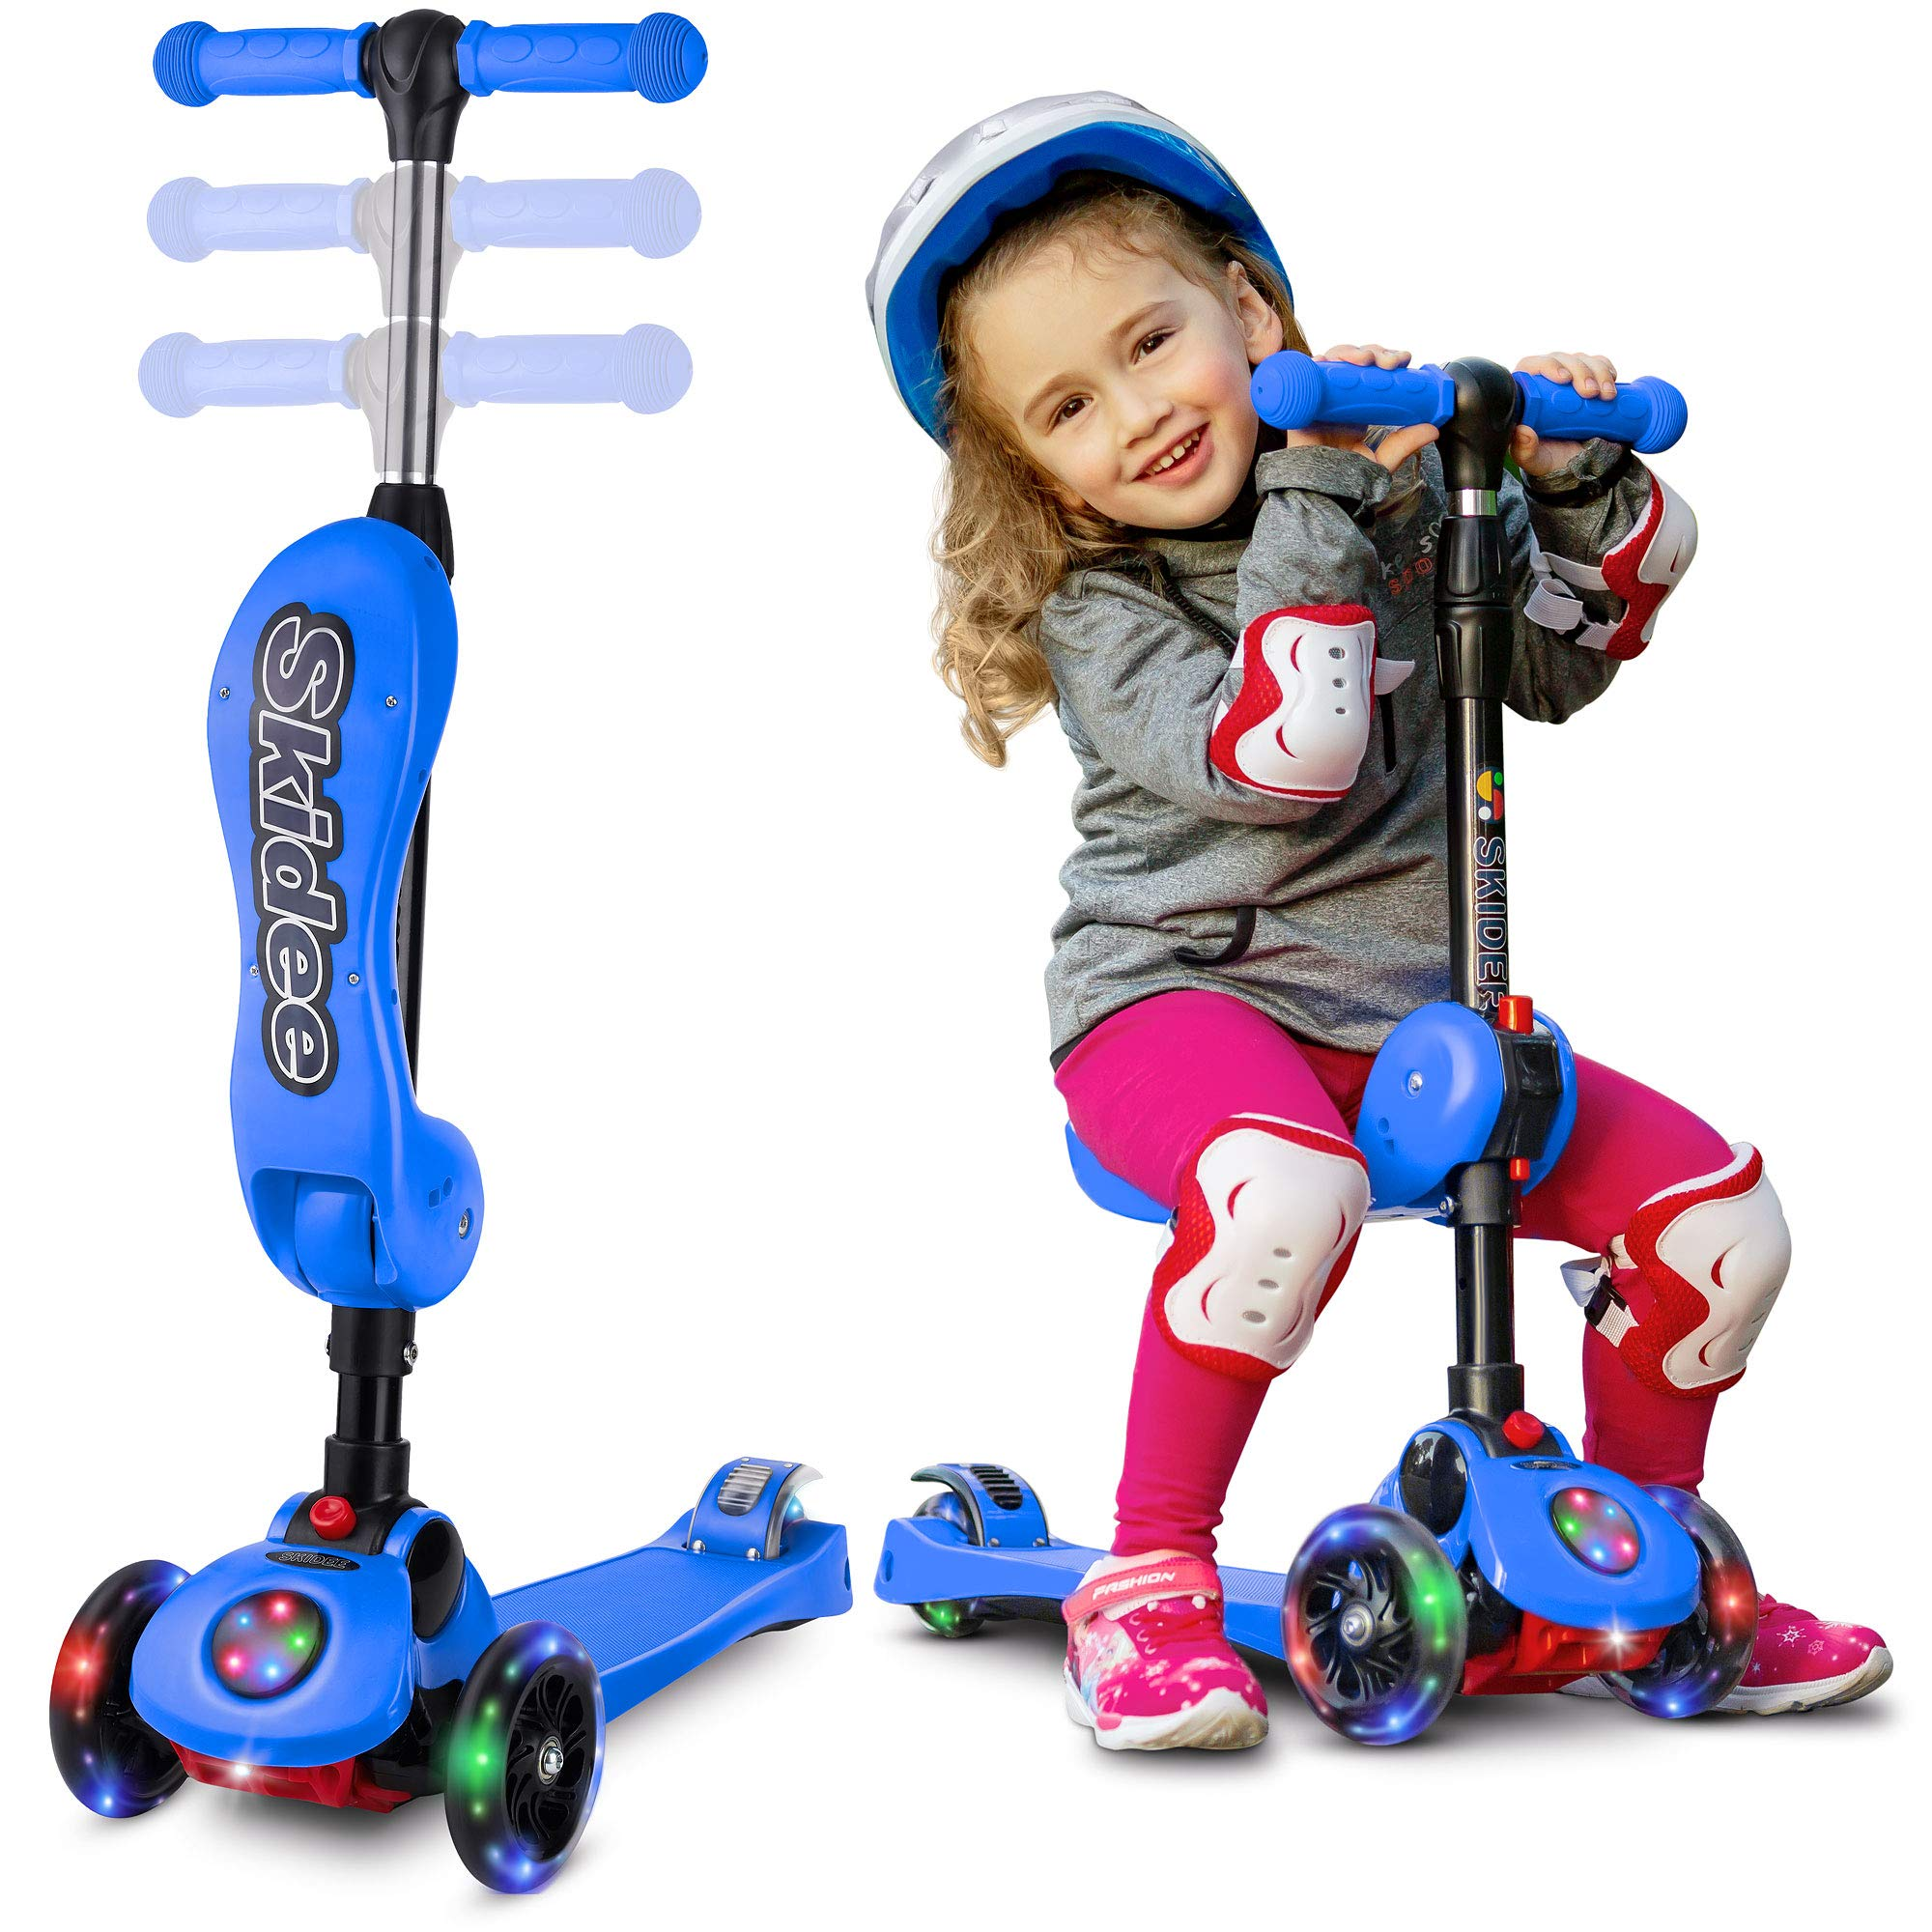 2-in-1 Scooter for Kids with Folding Removable Seat Zero Assembling - Adjustable Height Kick Scooter for Toddlers Girls & Boys - Fun Outdoor Toys for Kids Fitness 3 PU Flashing Wheels Extra Wide Deck by S SKIDEE